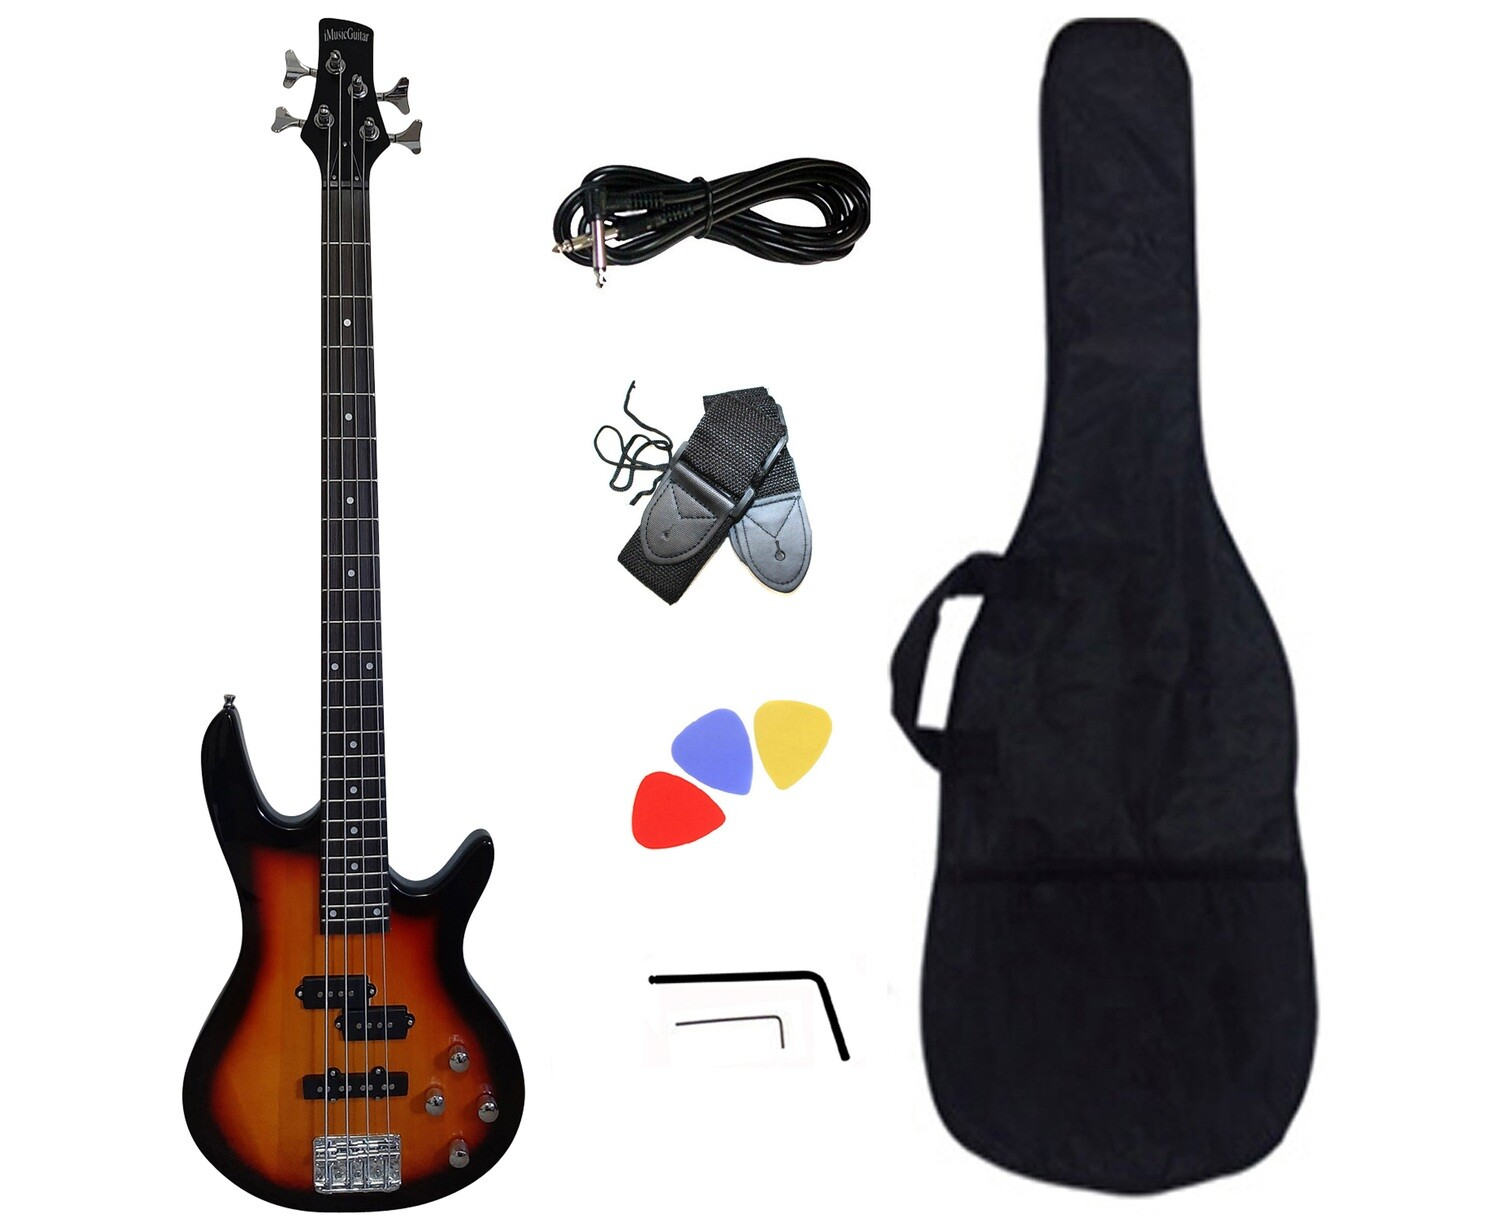 Bass Guitar for Beginners Sunburst iMEB887